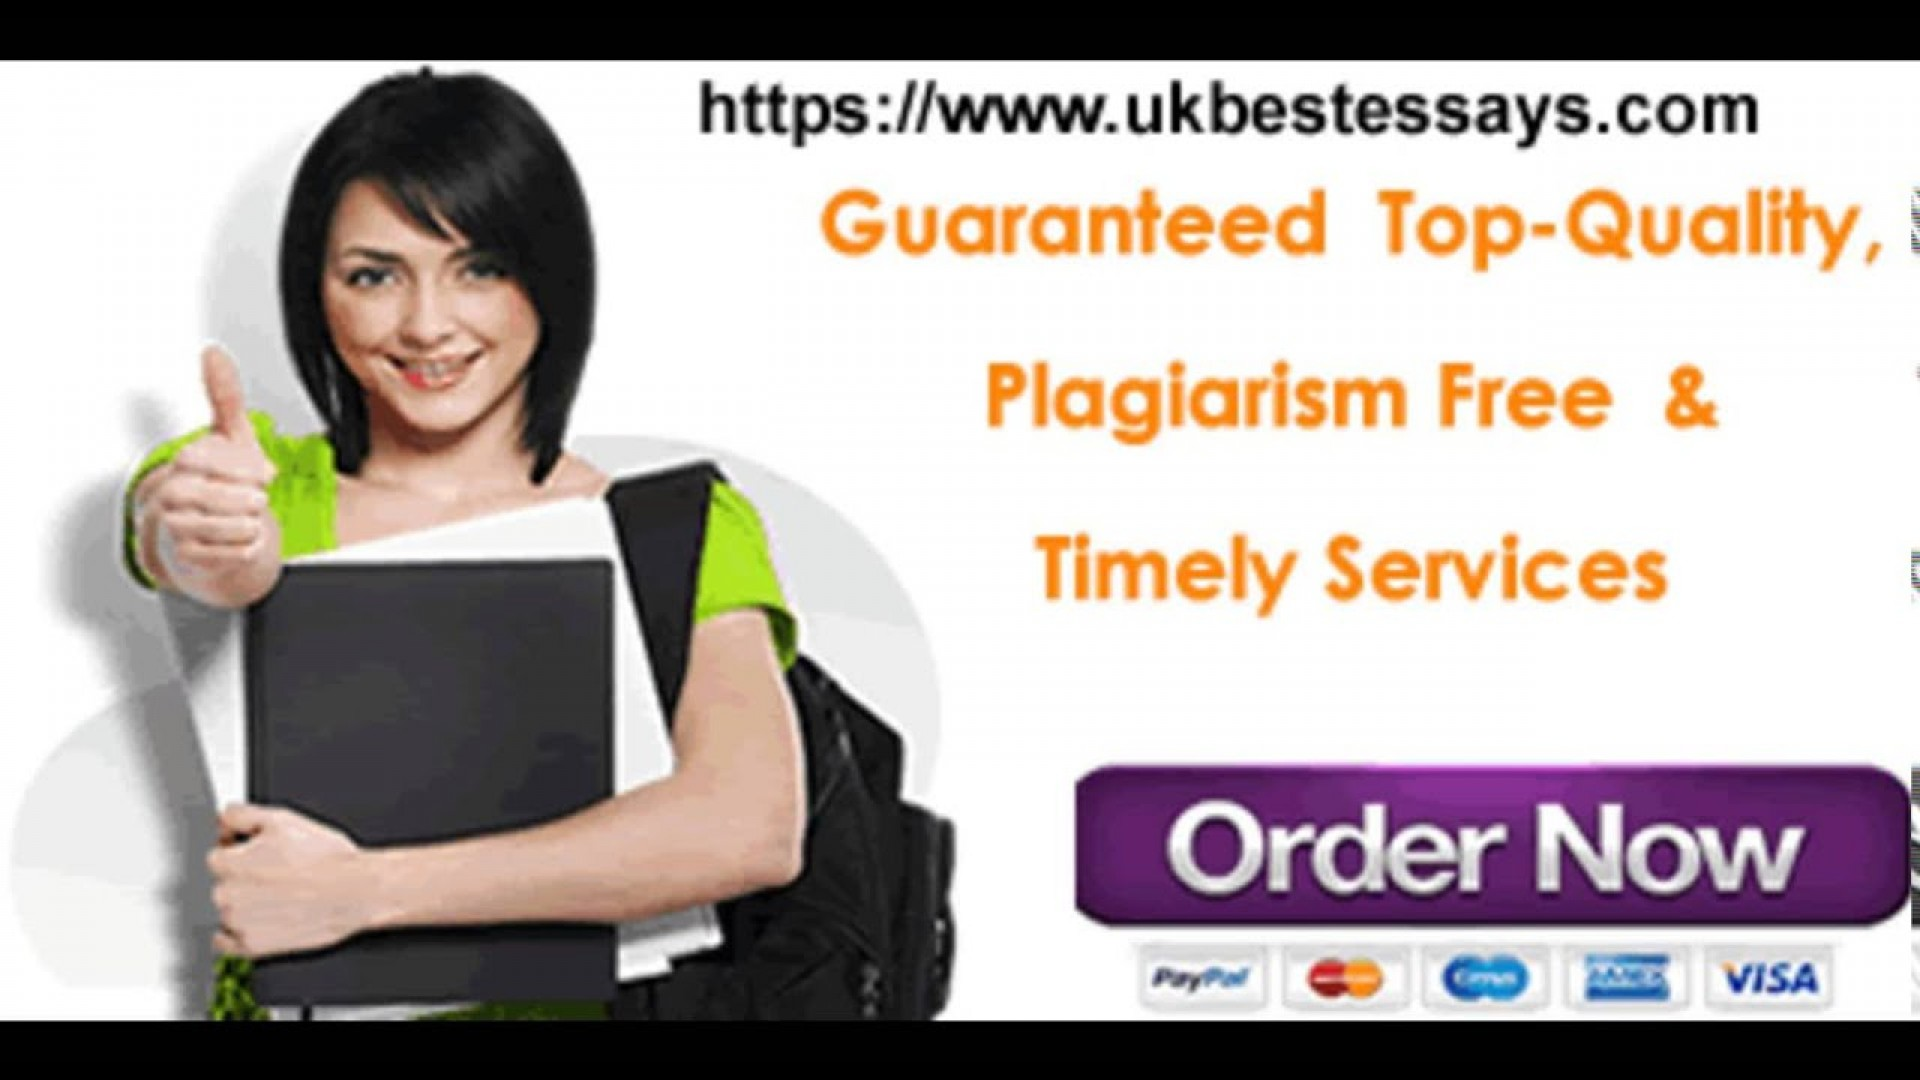 011 Essay Example Writing Service Best Essays Uk Trusted Custom Safe Wondrous Cheap Canada Writer Reddit 2018 1920